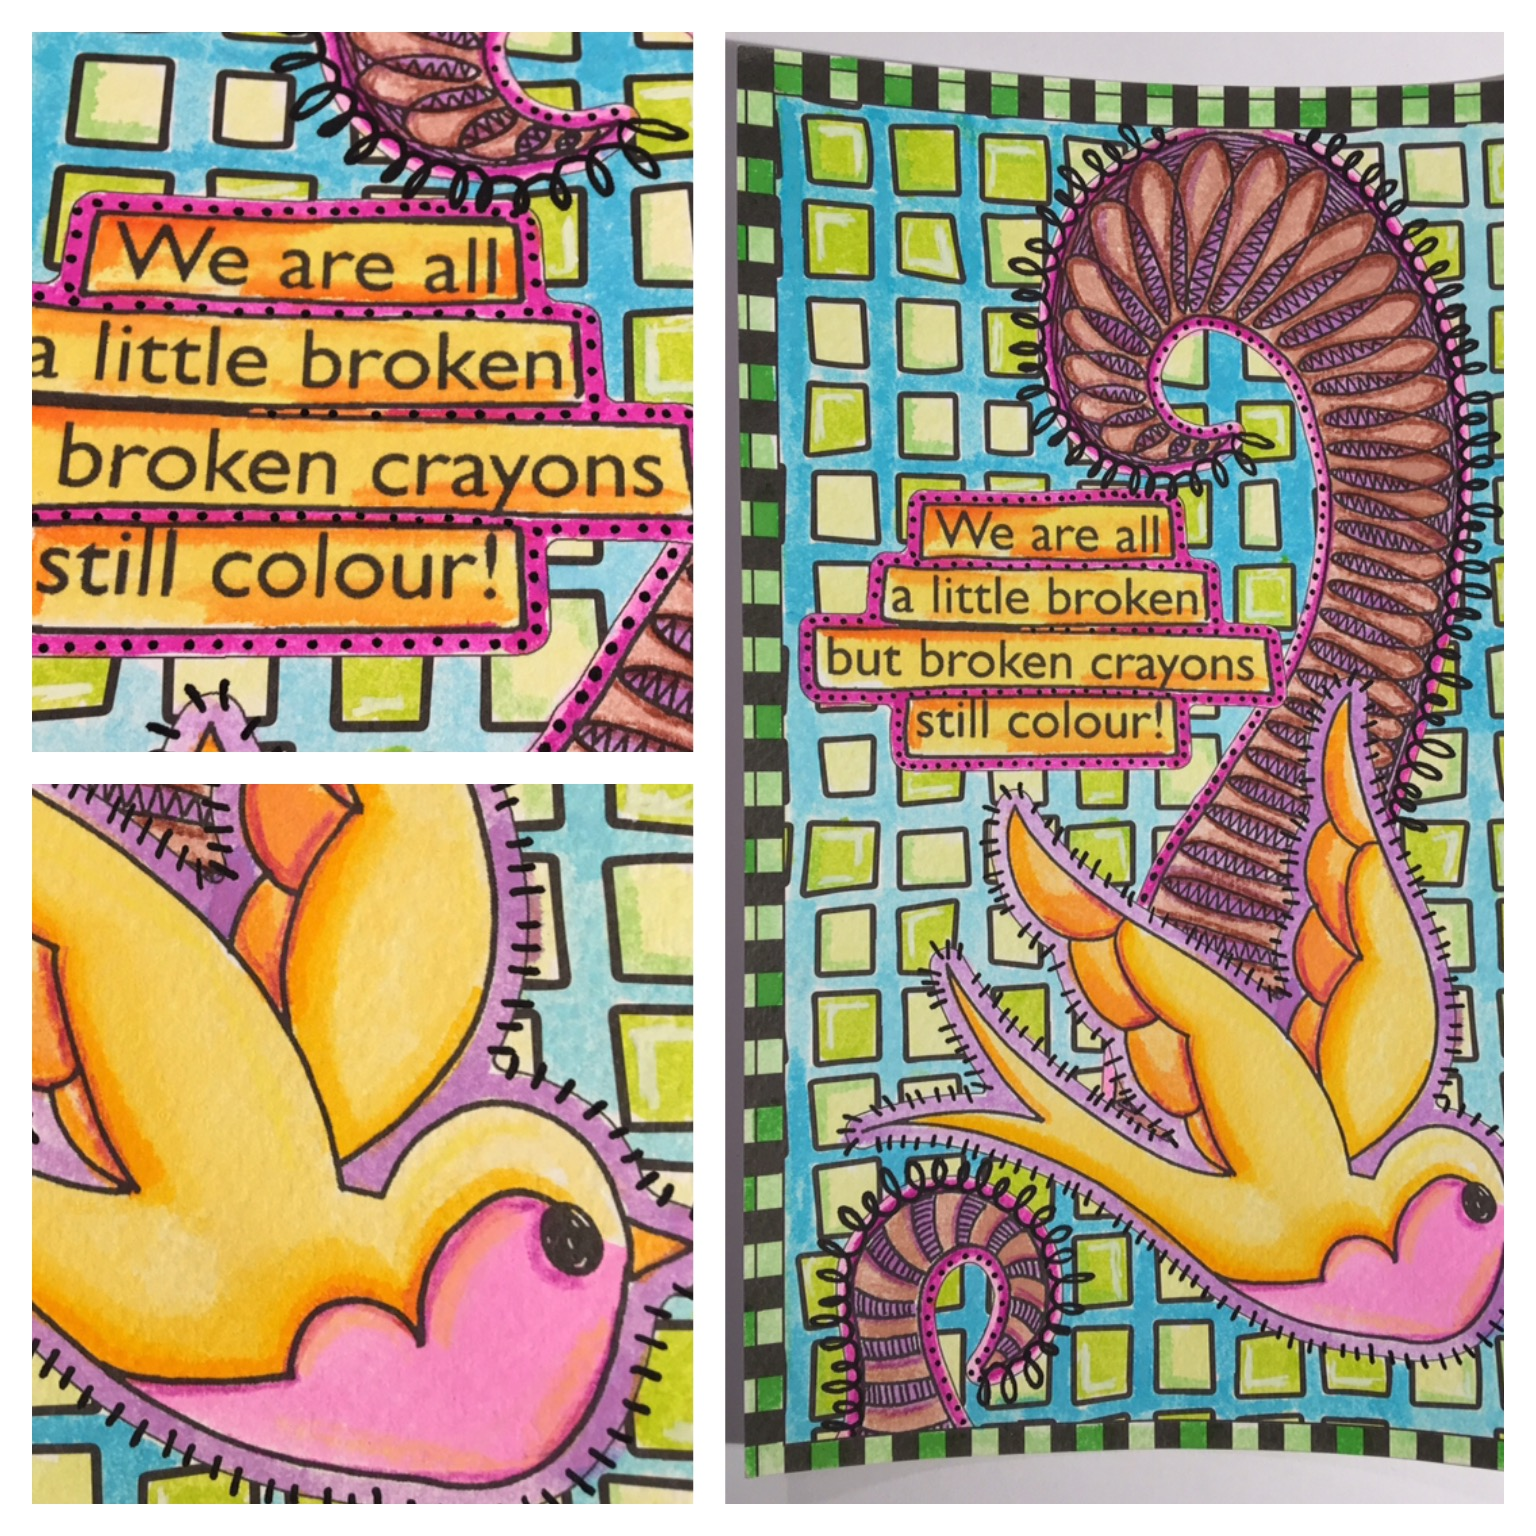 Long u coloring pages - We Have Added Doodles Using The Dylusions Black White Paint Pens Doesn T It Really Make The Pages Pop I Could Just Sit And Colour Them All Day Long